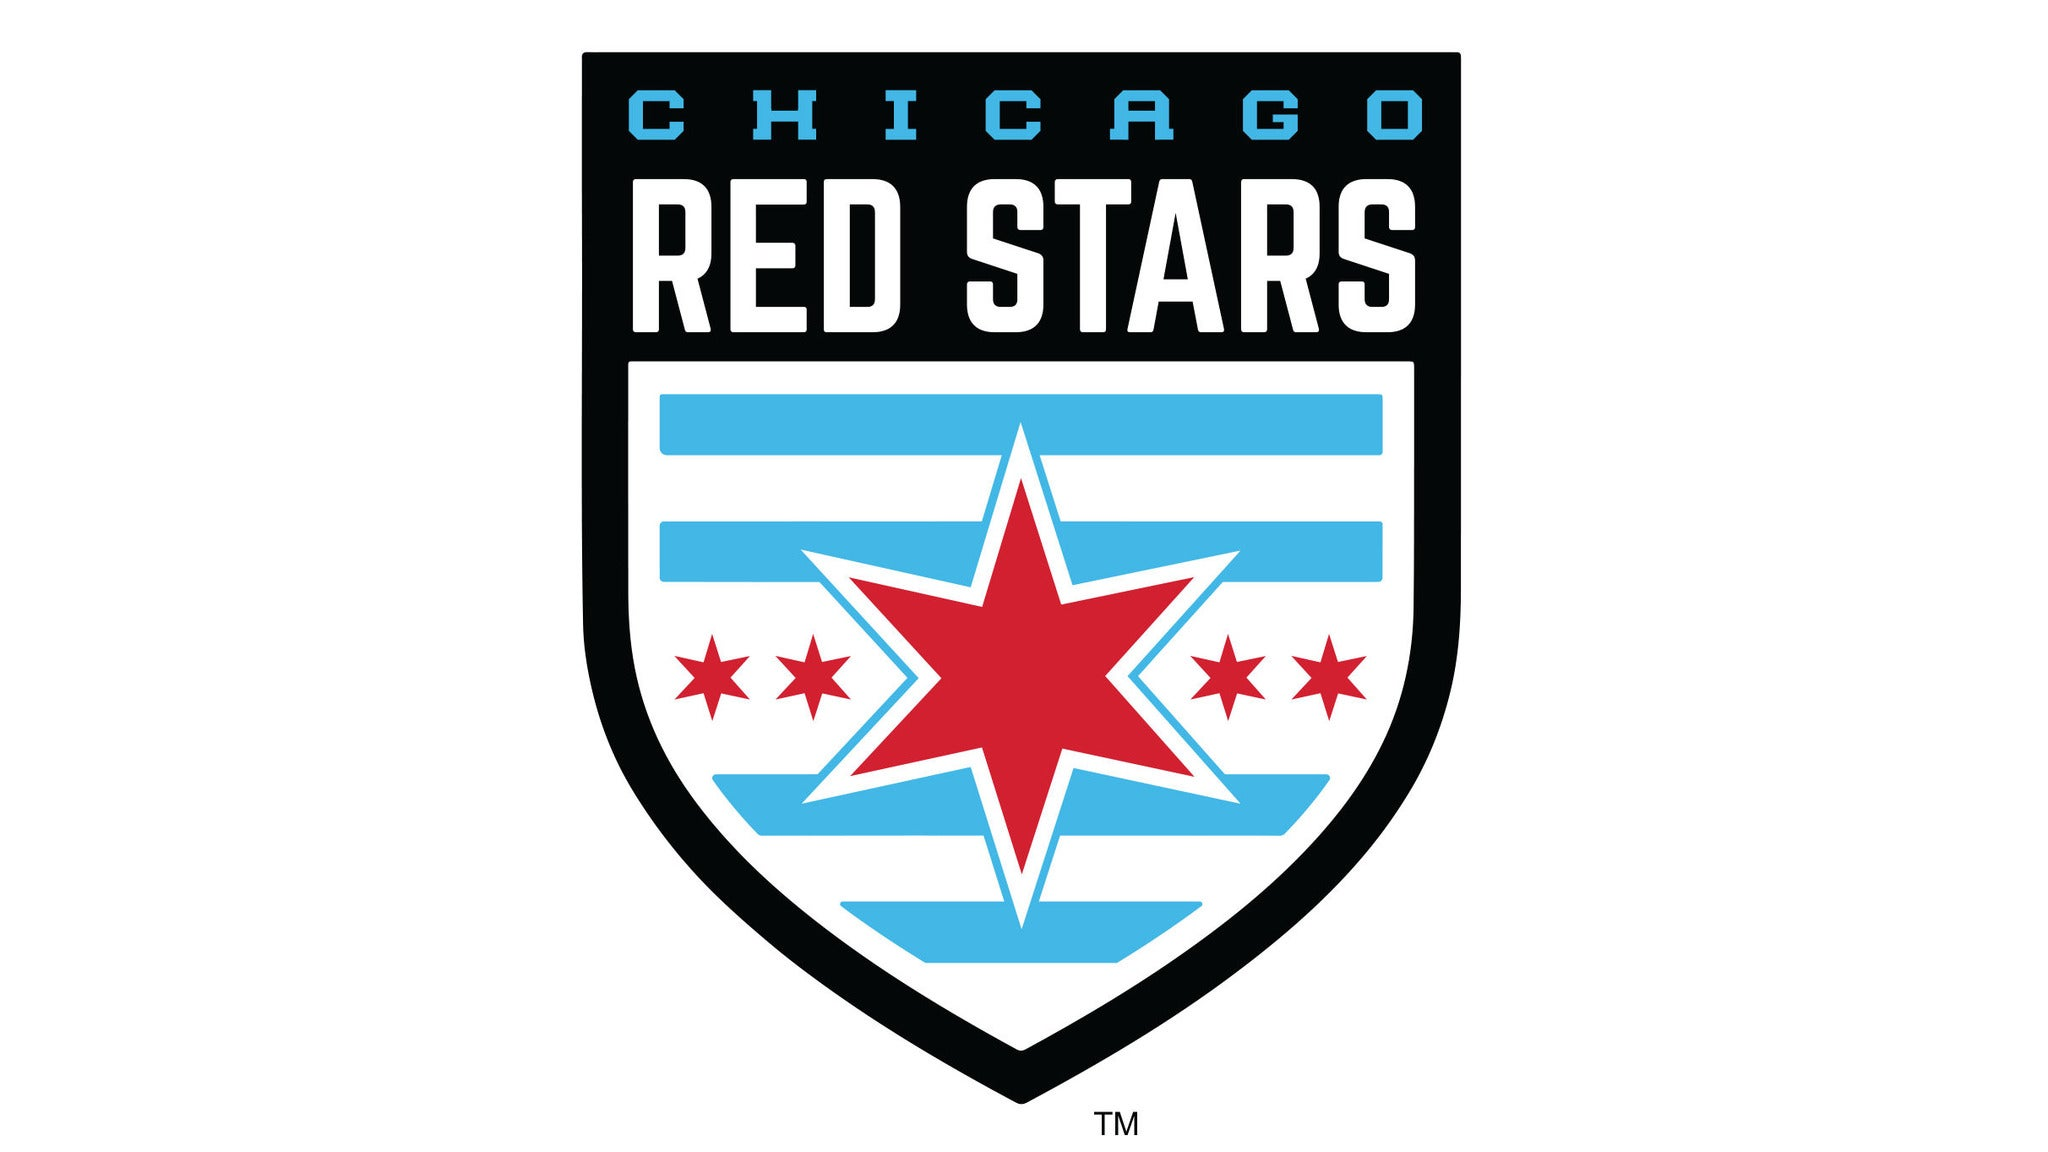 Chicago Red Stars vs. Seattle Reign FC at TOYOTA PARK